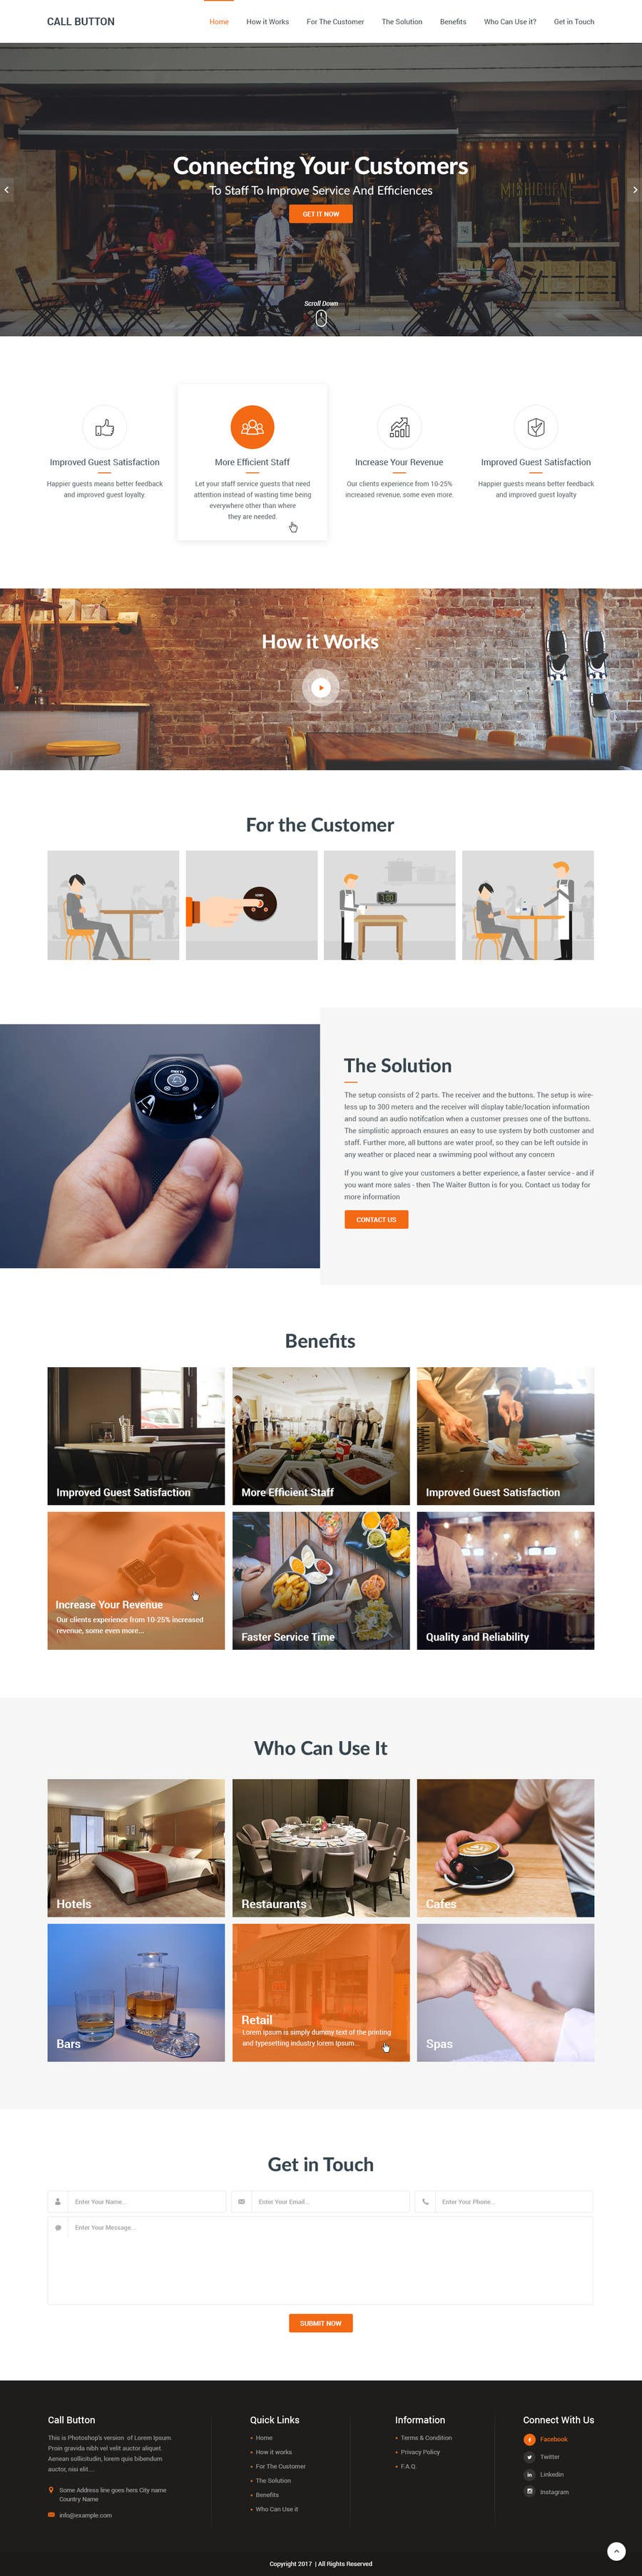 Proposition n°32 du concours Design a Website Mockup for a new product